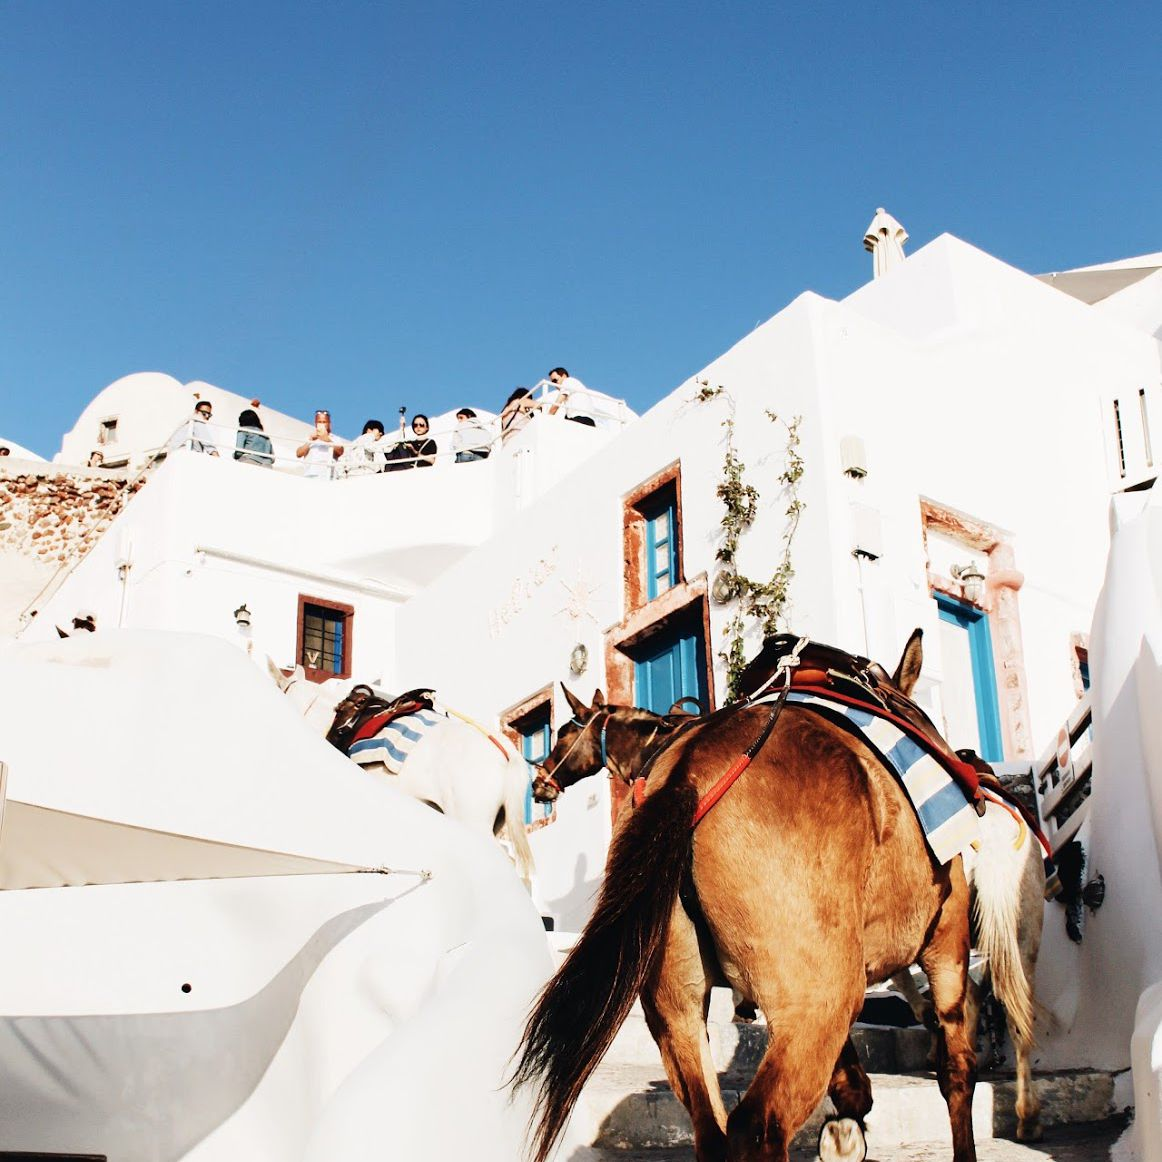 Donkeys climbing up the stairs in Santorini